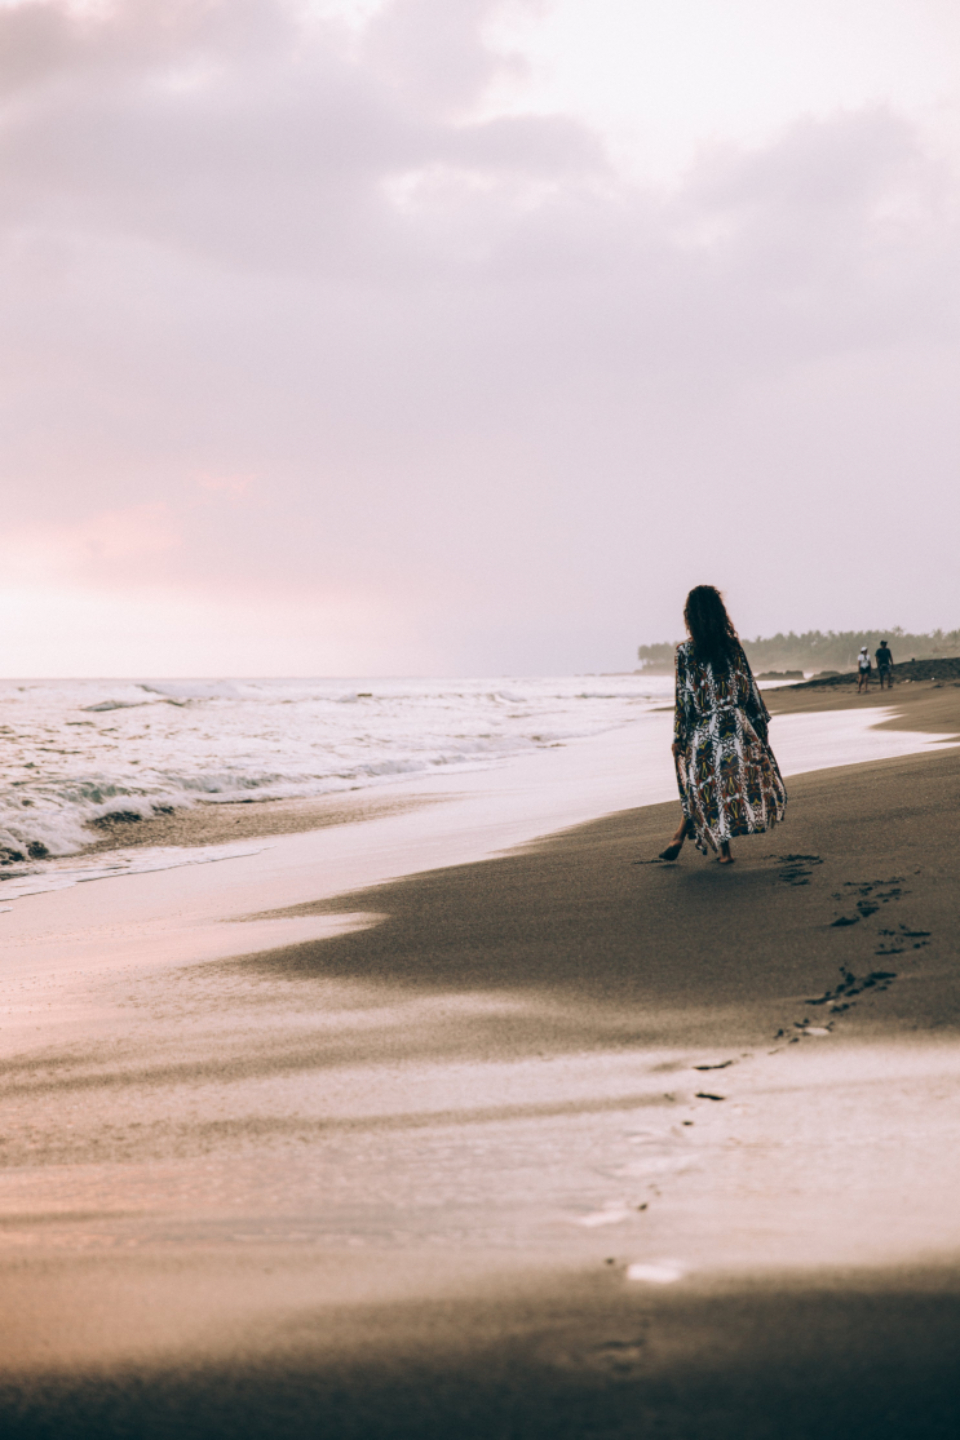 women beach sand ocean waves back view water shore coast walking person female sky footprints tide